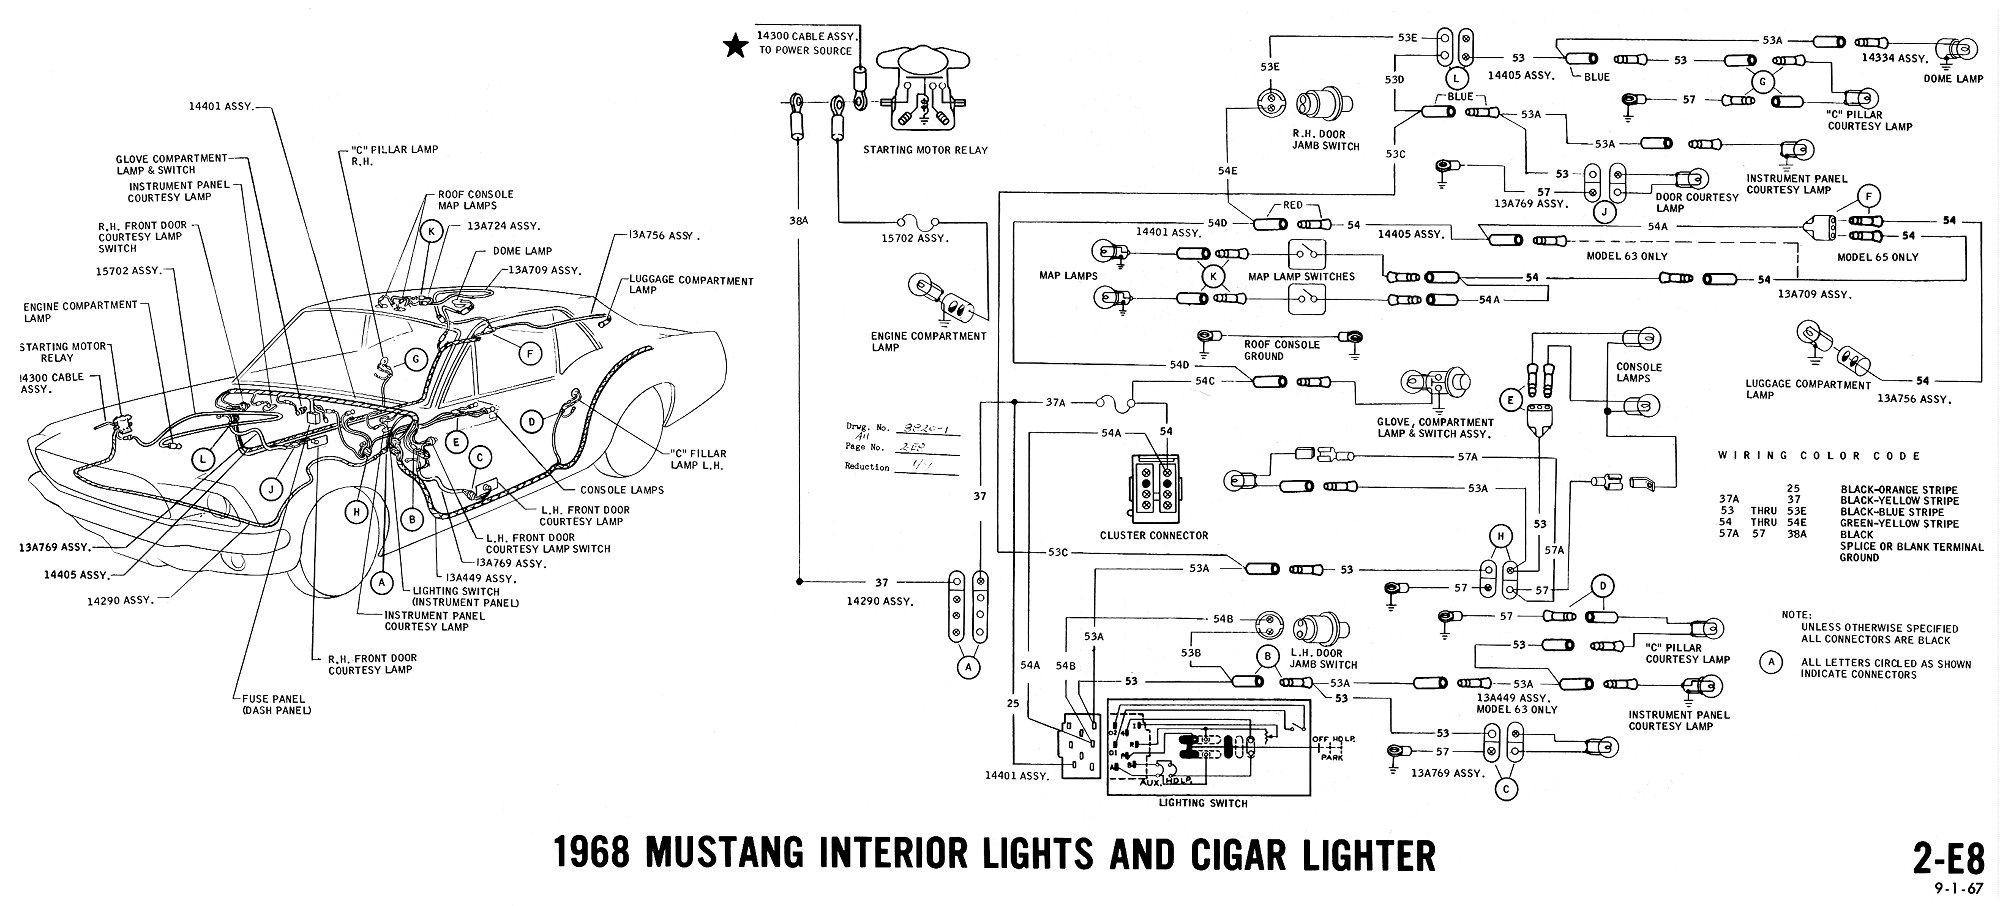 Wiring Harness Diagram Ford Mustang Detailed 1995 F350 1968 Schematic Simple Diagrams